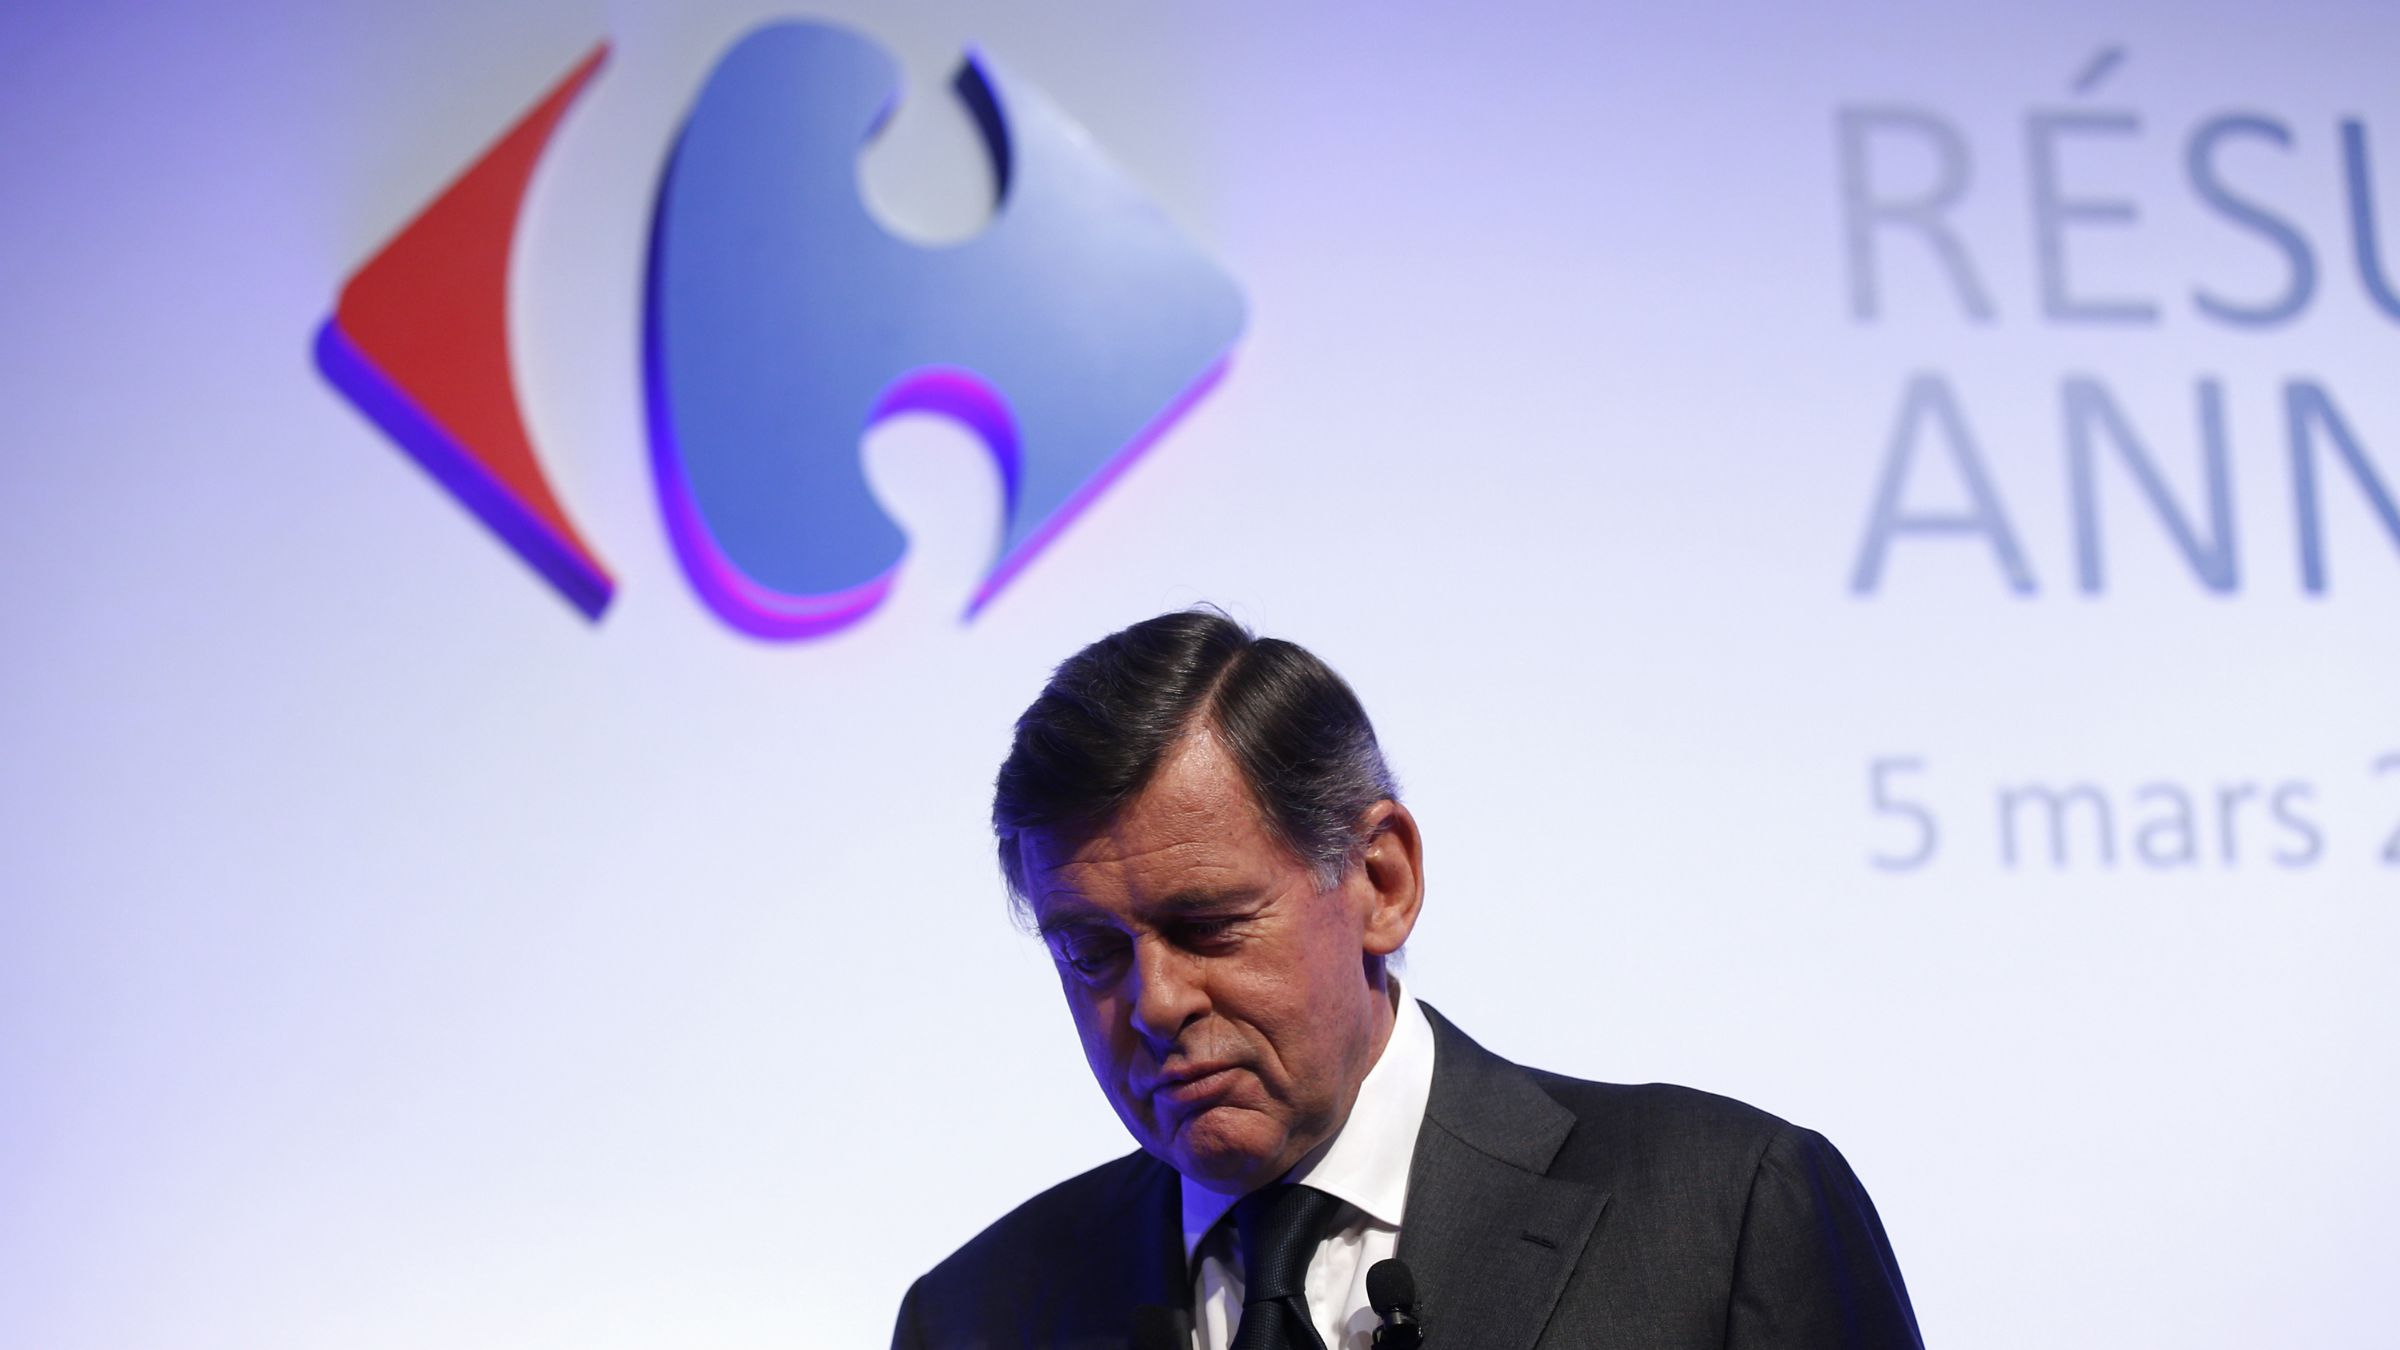 Carrefour-CEO